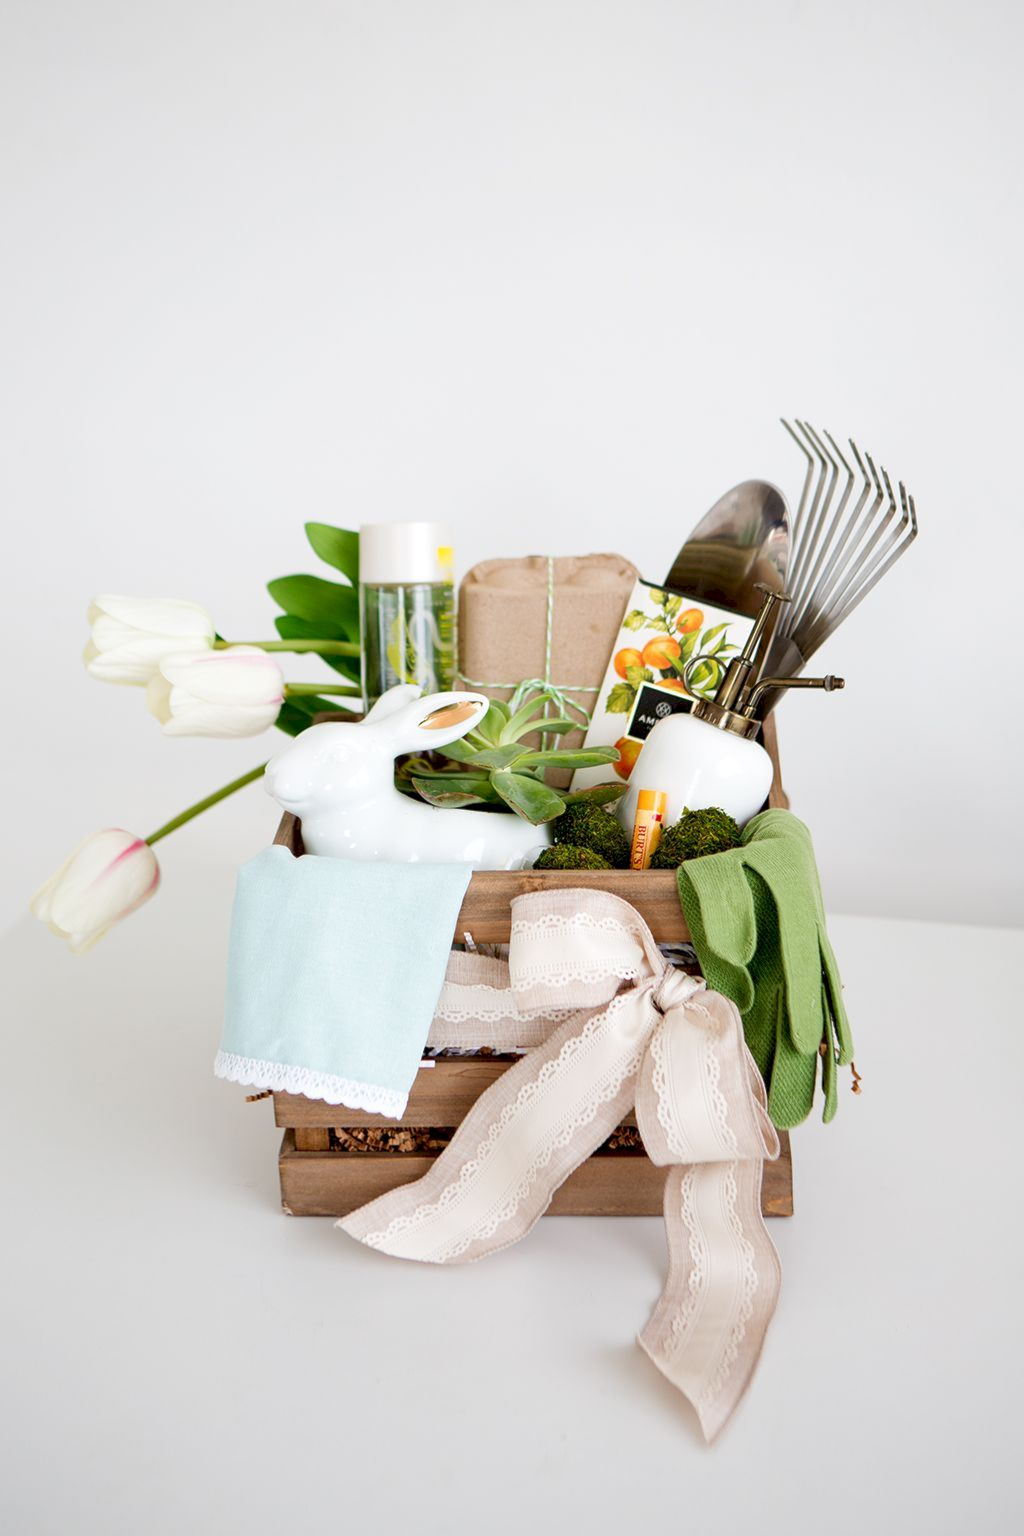 DIY Easter basket ideas made from affordable and recycled materials very charming as Spring celebration accessories Image 19